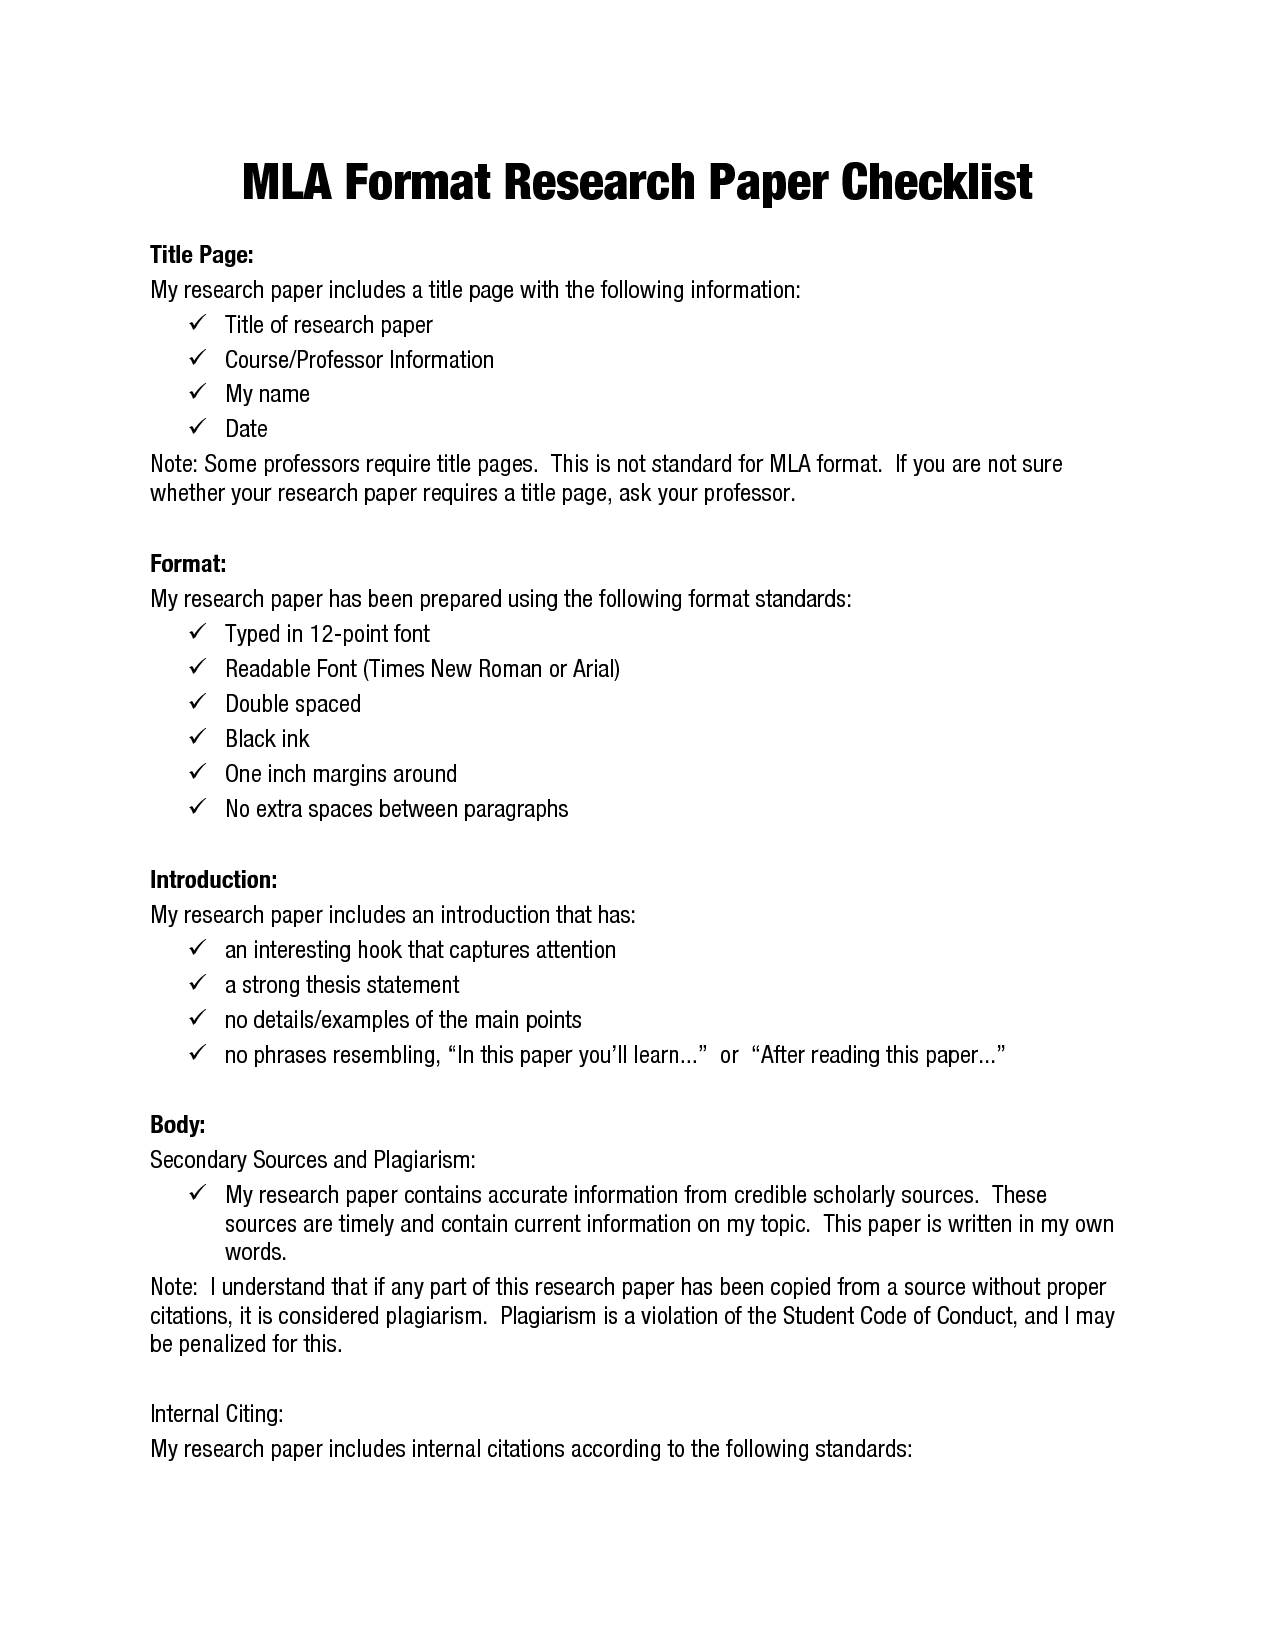 001 Credible Sources For High School Research Paper Singular Full